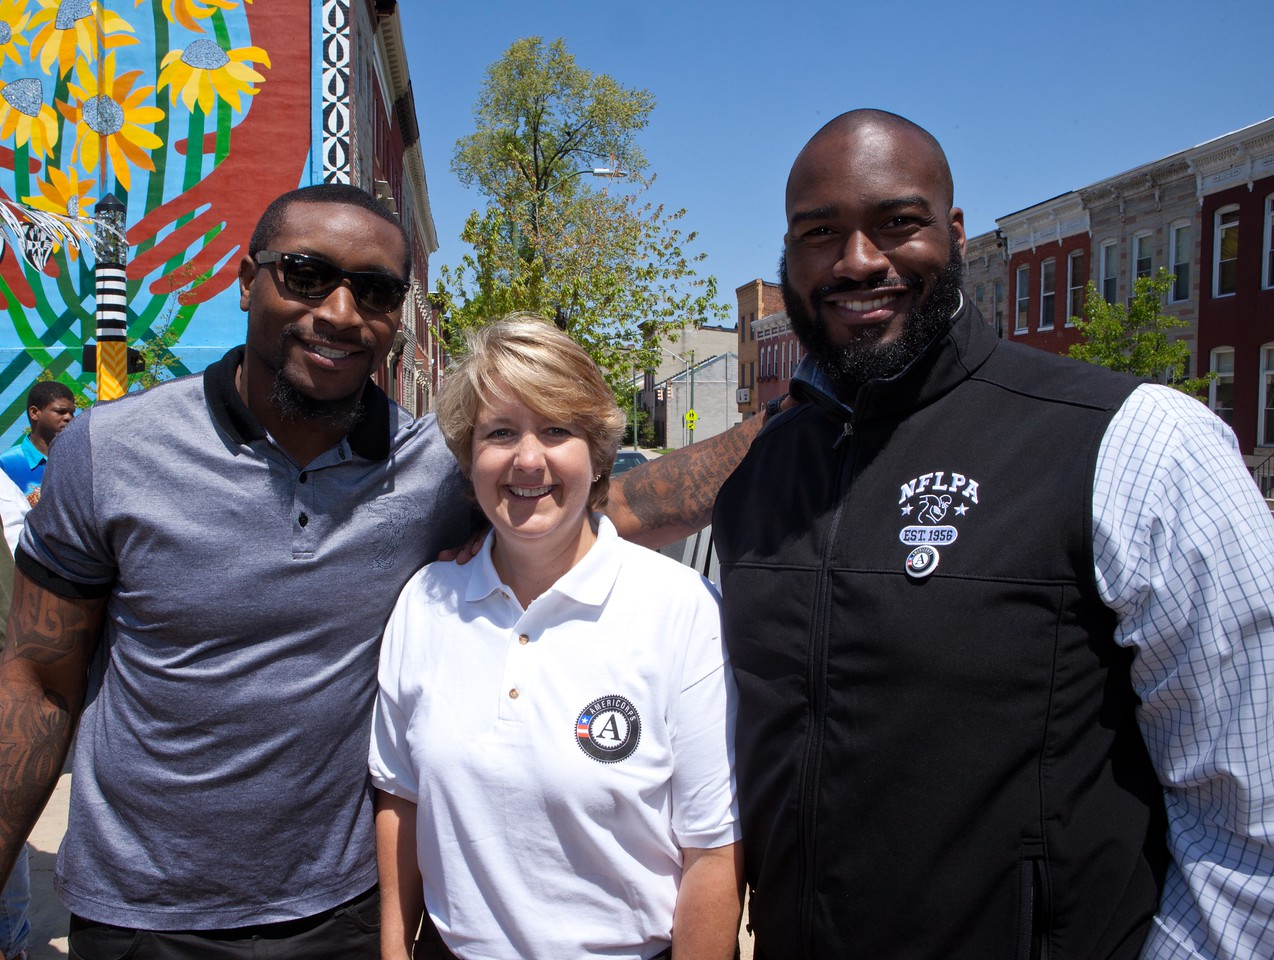 CNCS CEO Wendy Spencer poses with San Francisco 49ers linebacker Navorro Bowman and Joe Briggs of the NFL Players Association at the Service Bowl in Baltimore, MD. Corporation for National and Community Service Photo.